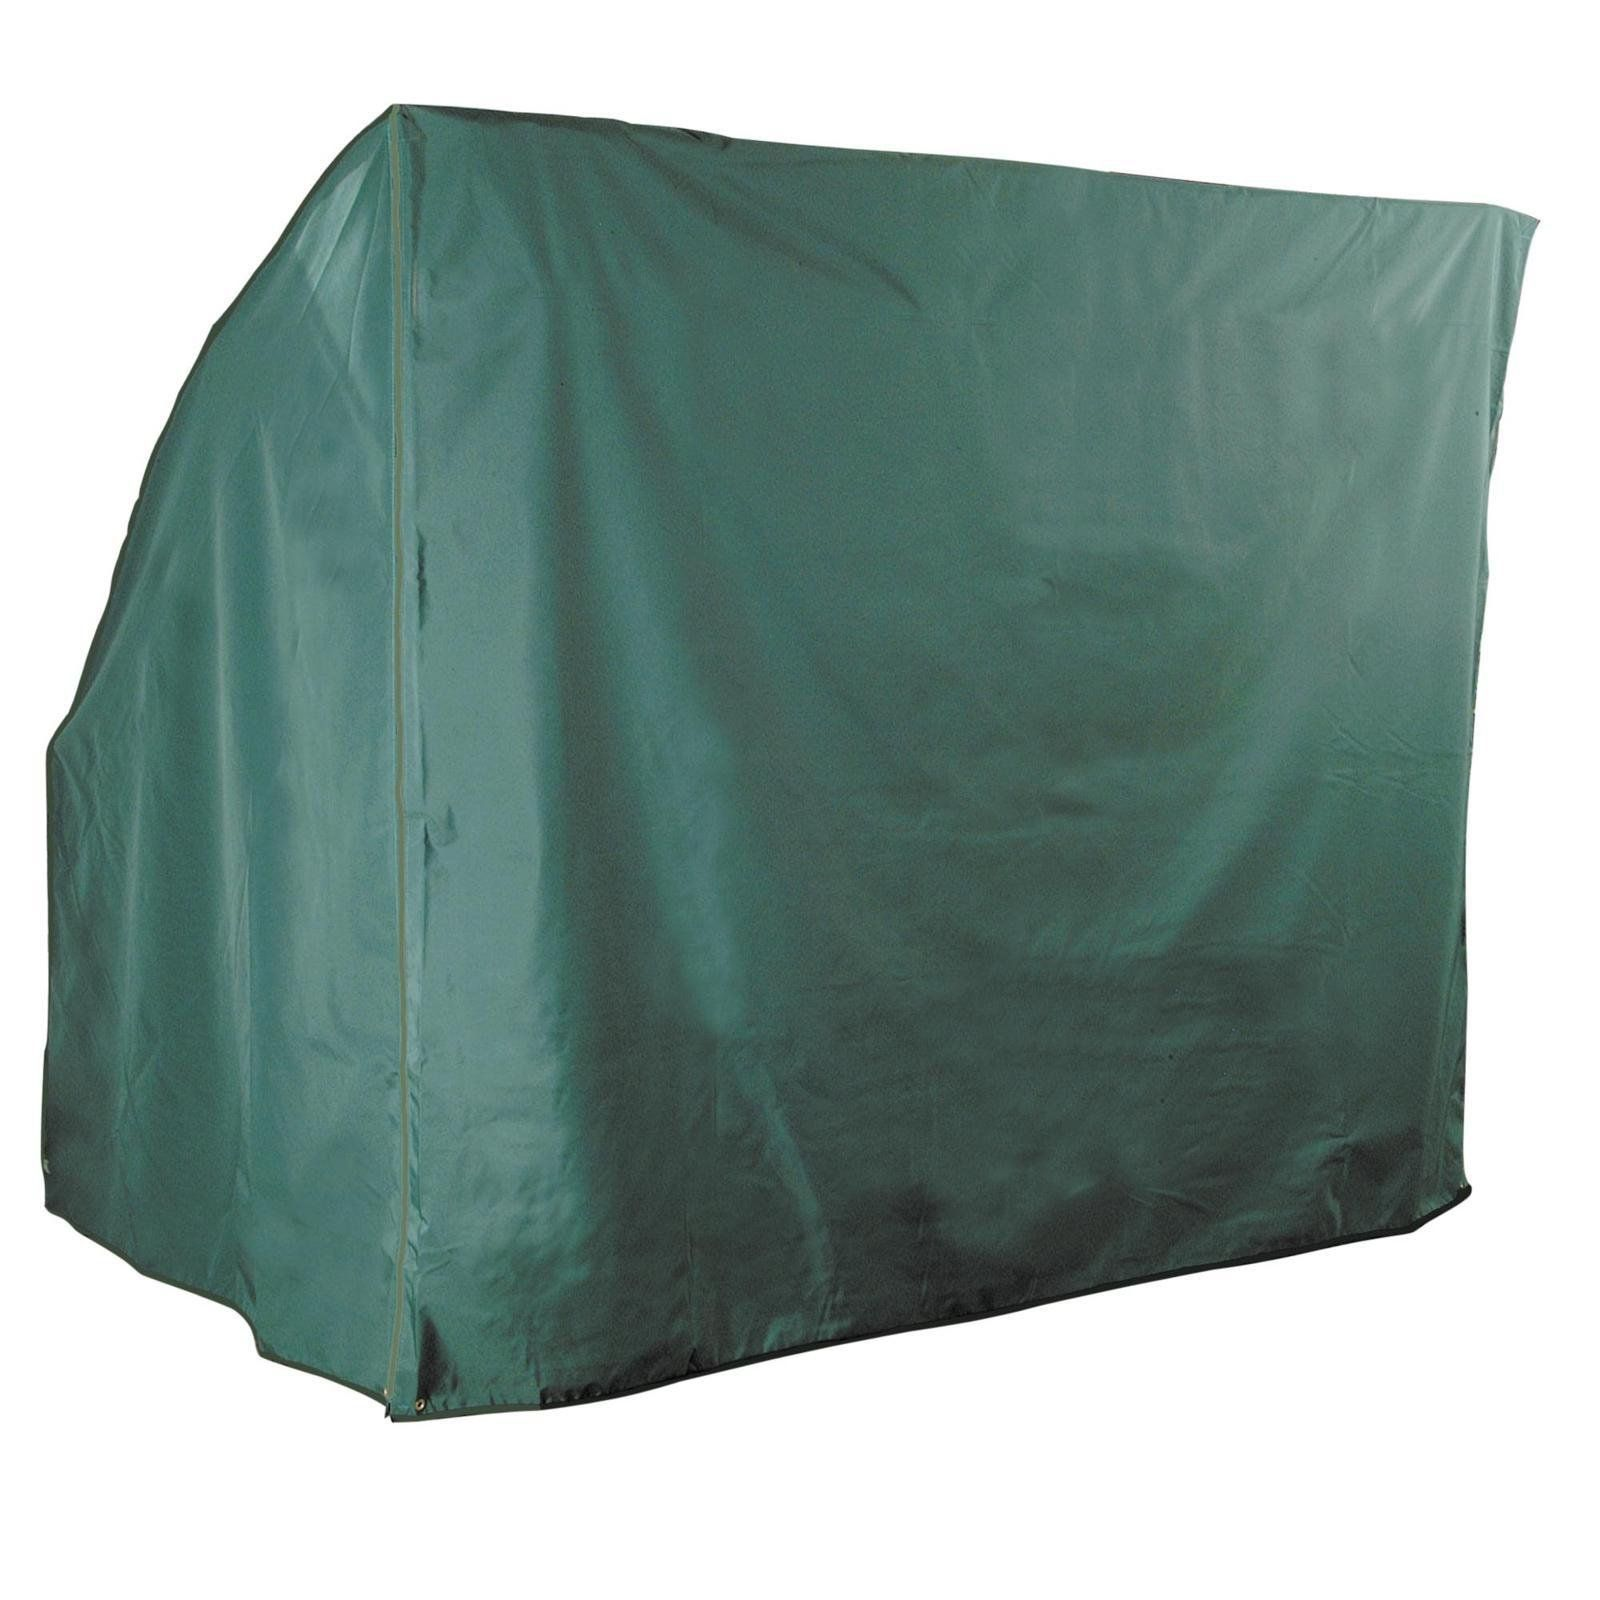 Bosmere c green porch swing cover l x w x h in c